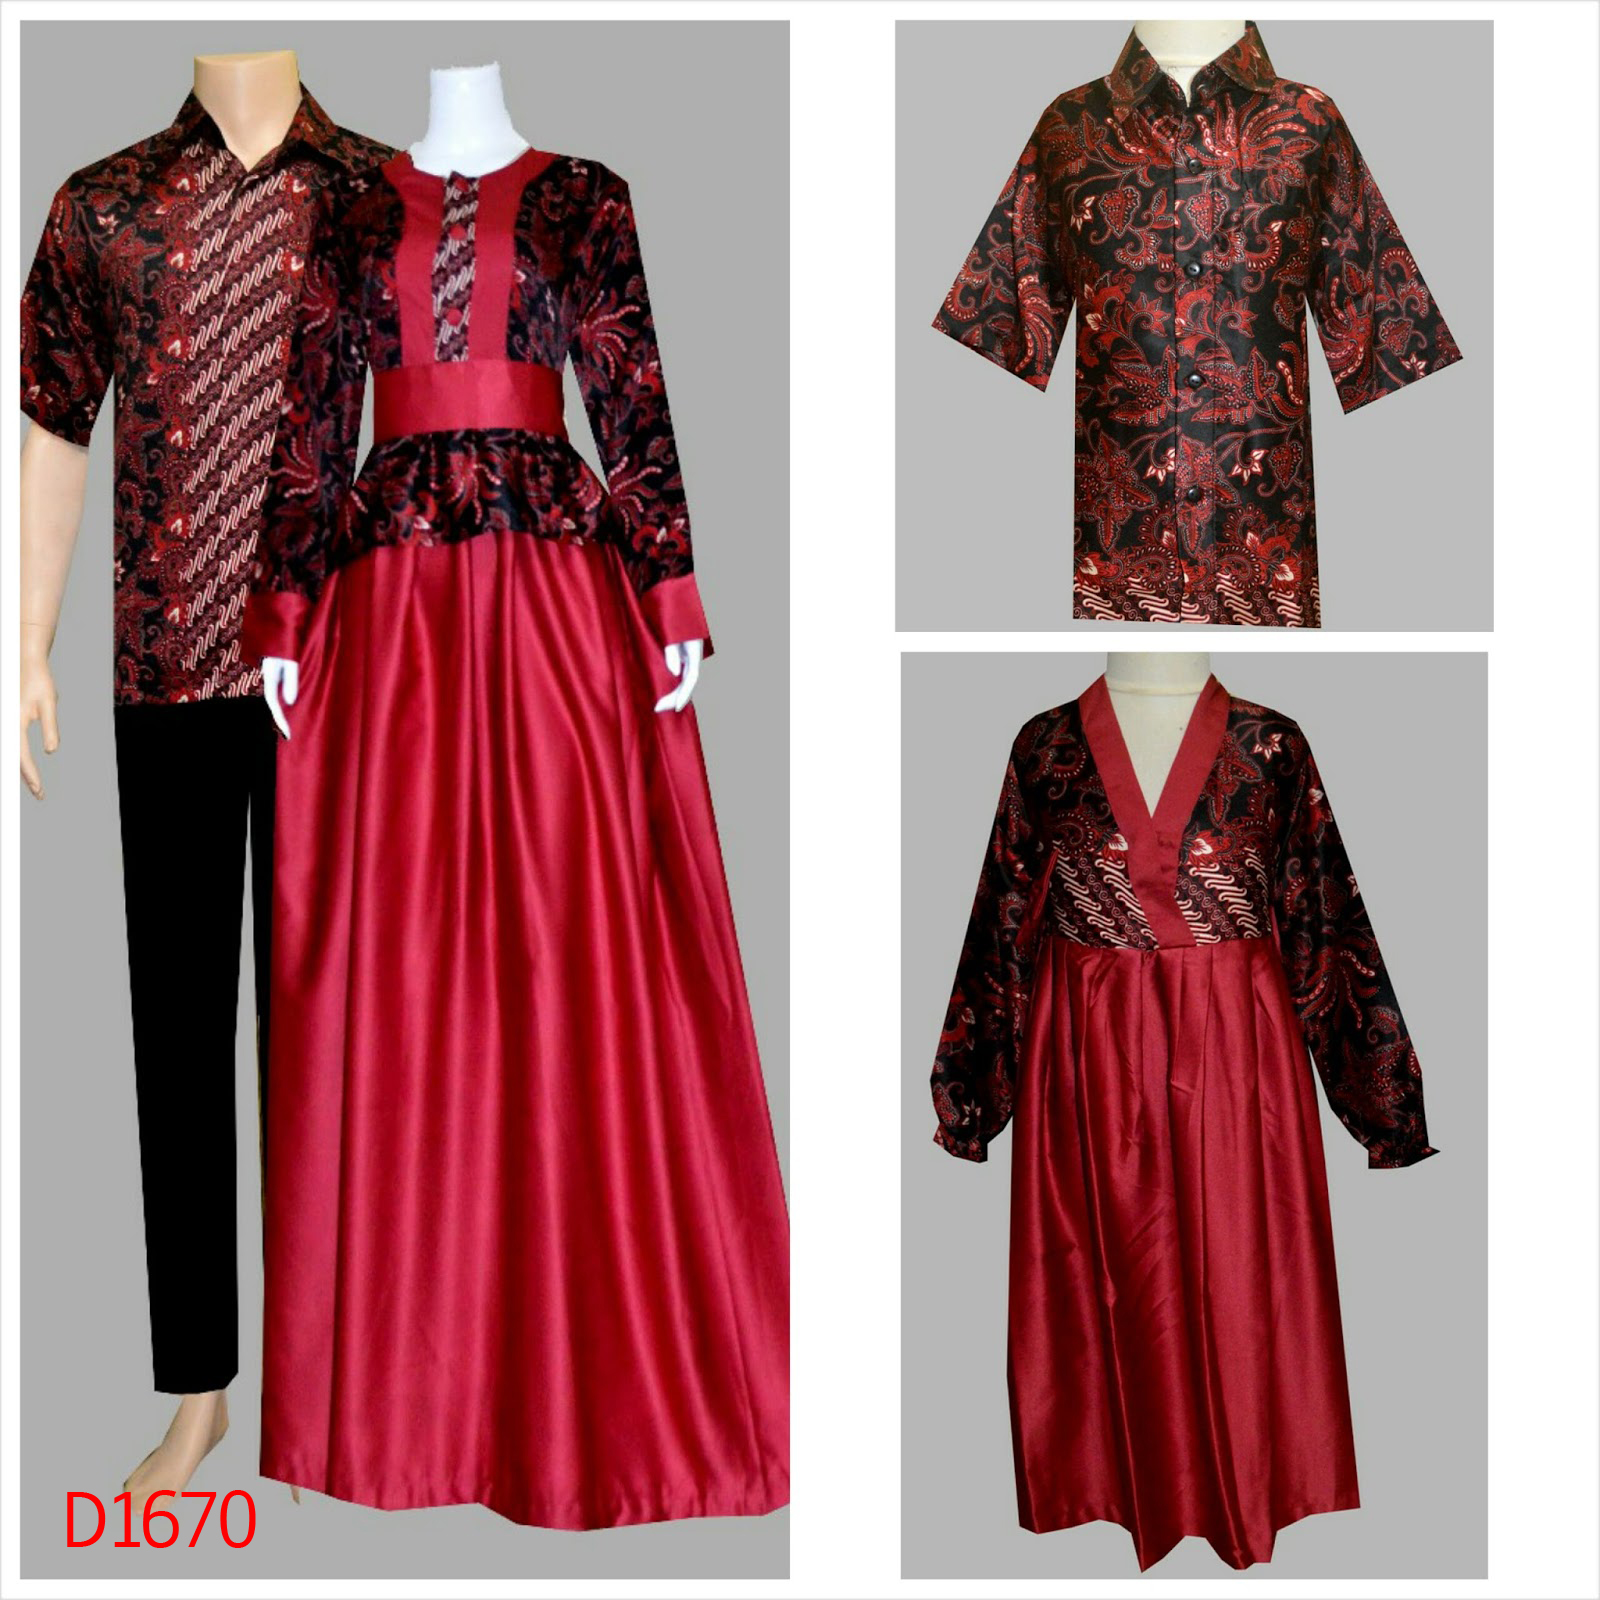 Jual Baju Batik Couple Model Baju Batik Motorcycle